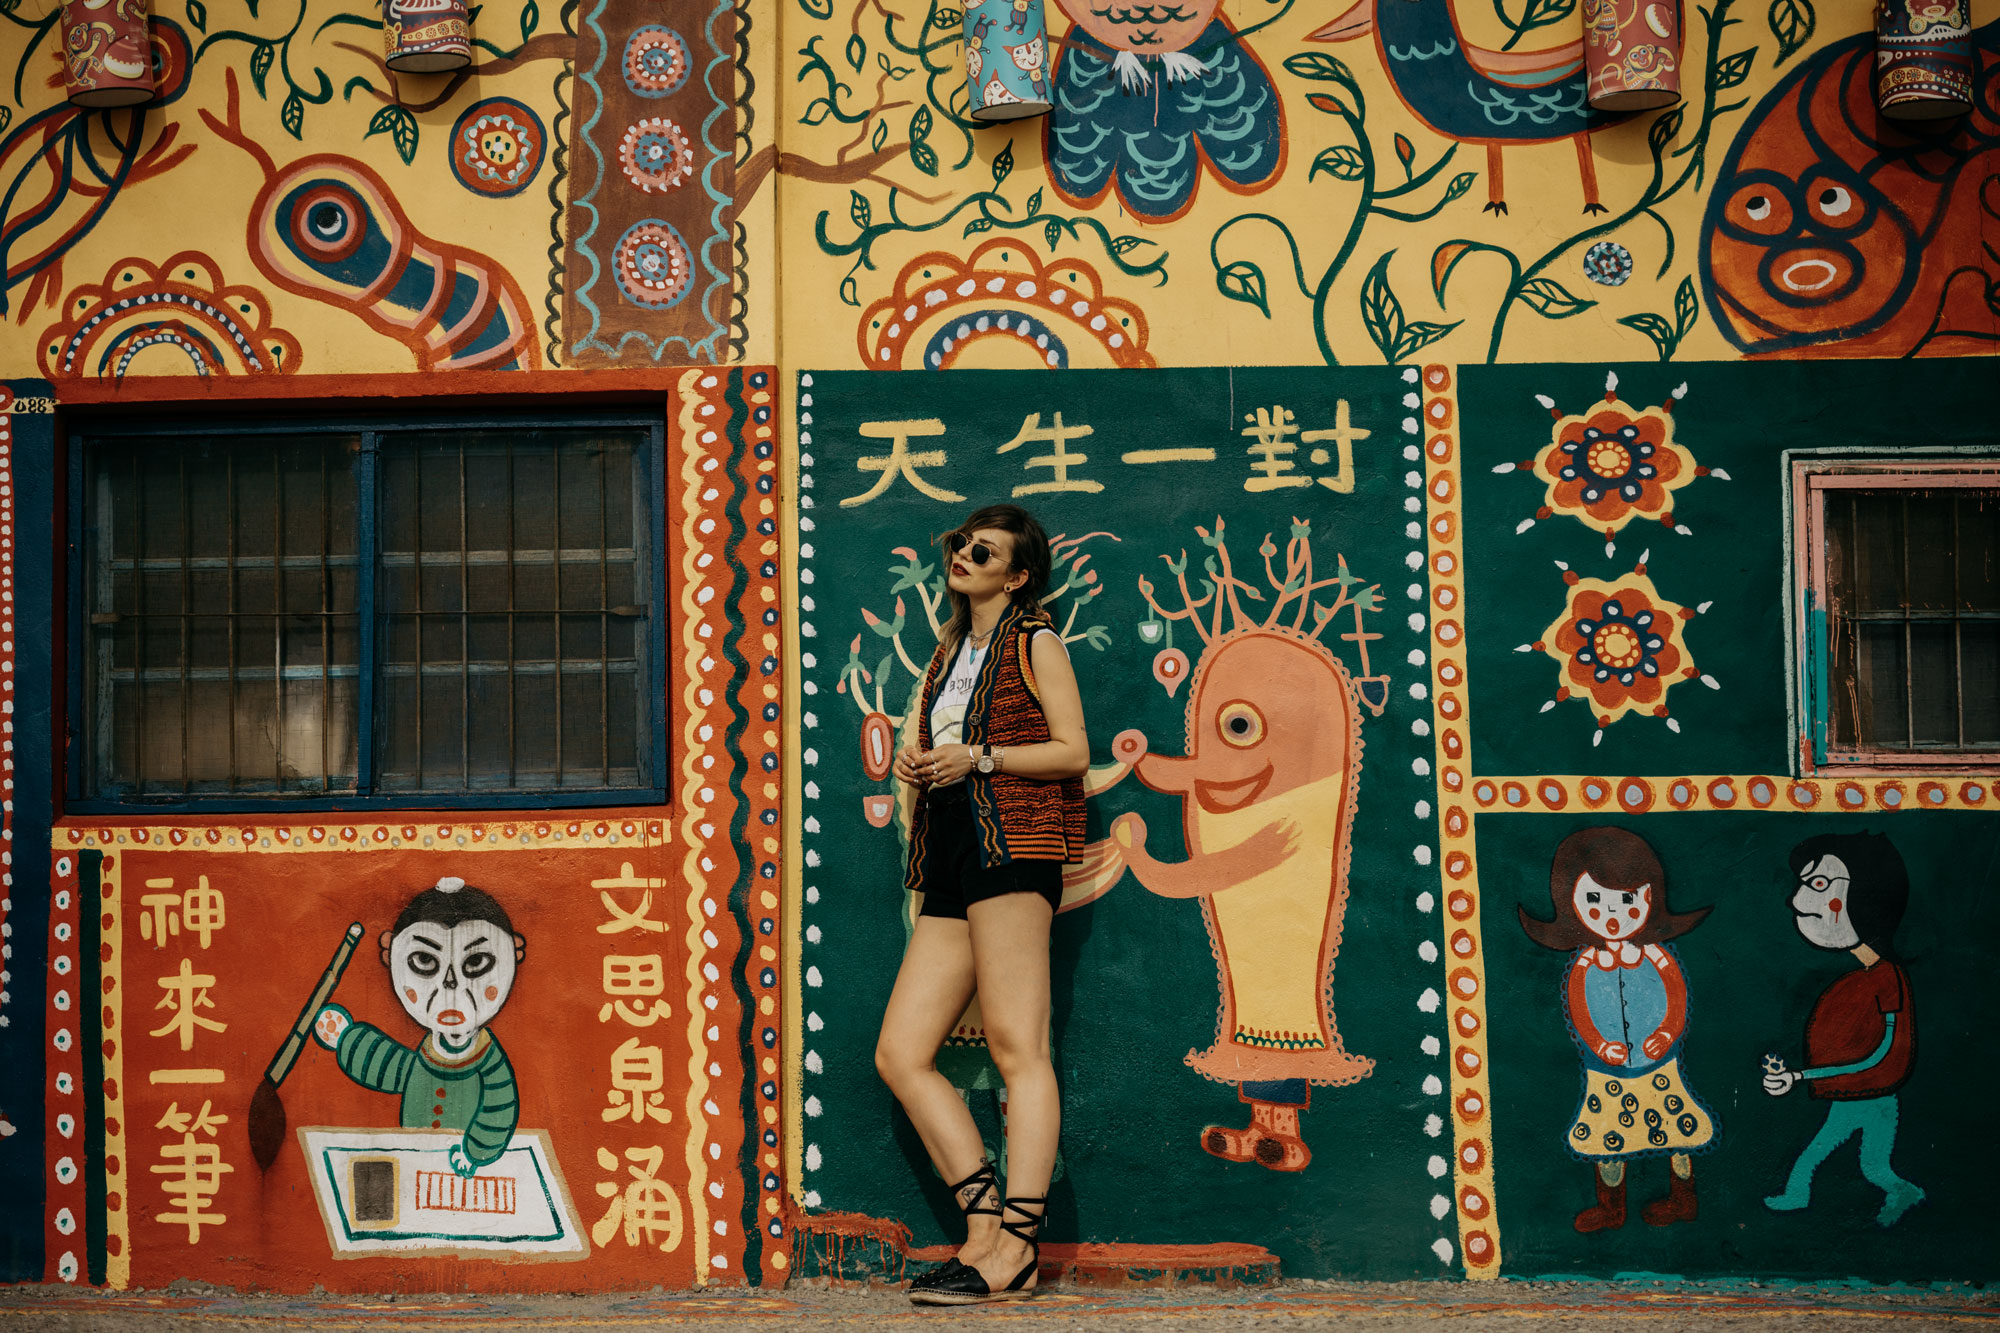 the story of the rainbow village in Taichung, Taiwan | editorial fashion shooting | outfit style: colorful, summer, sexy, happy, smiley | street art